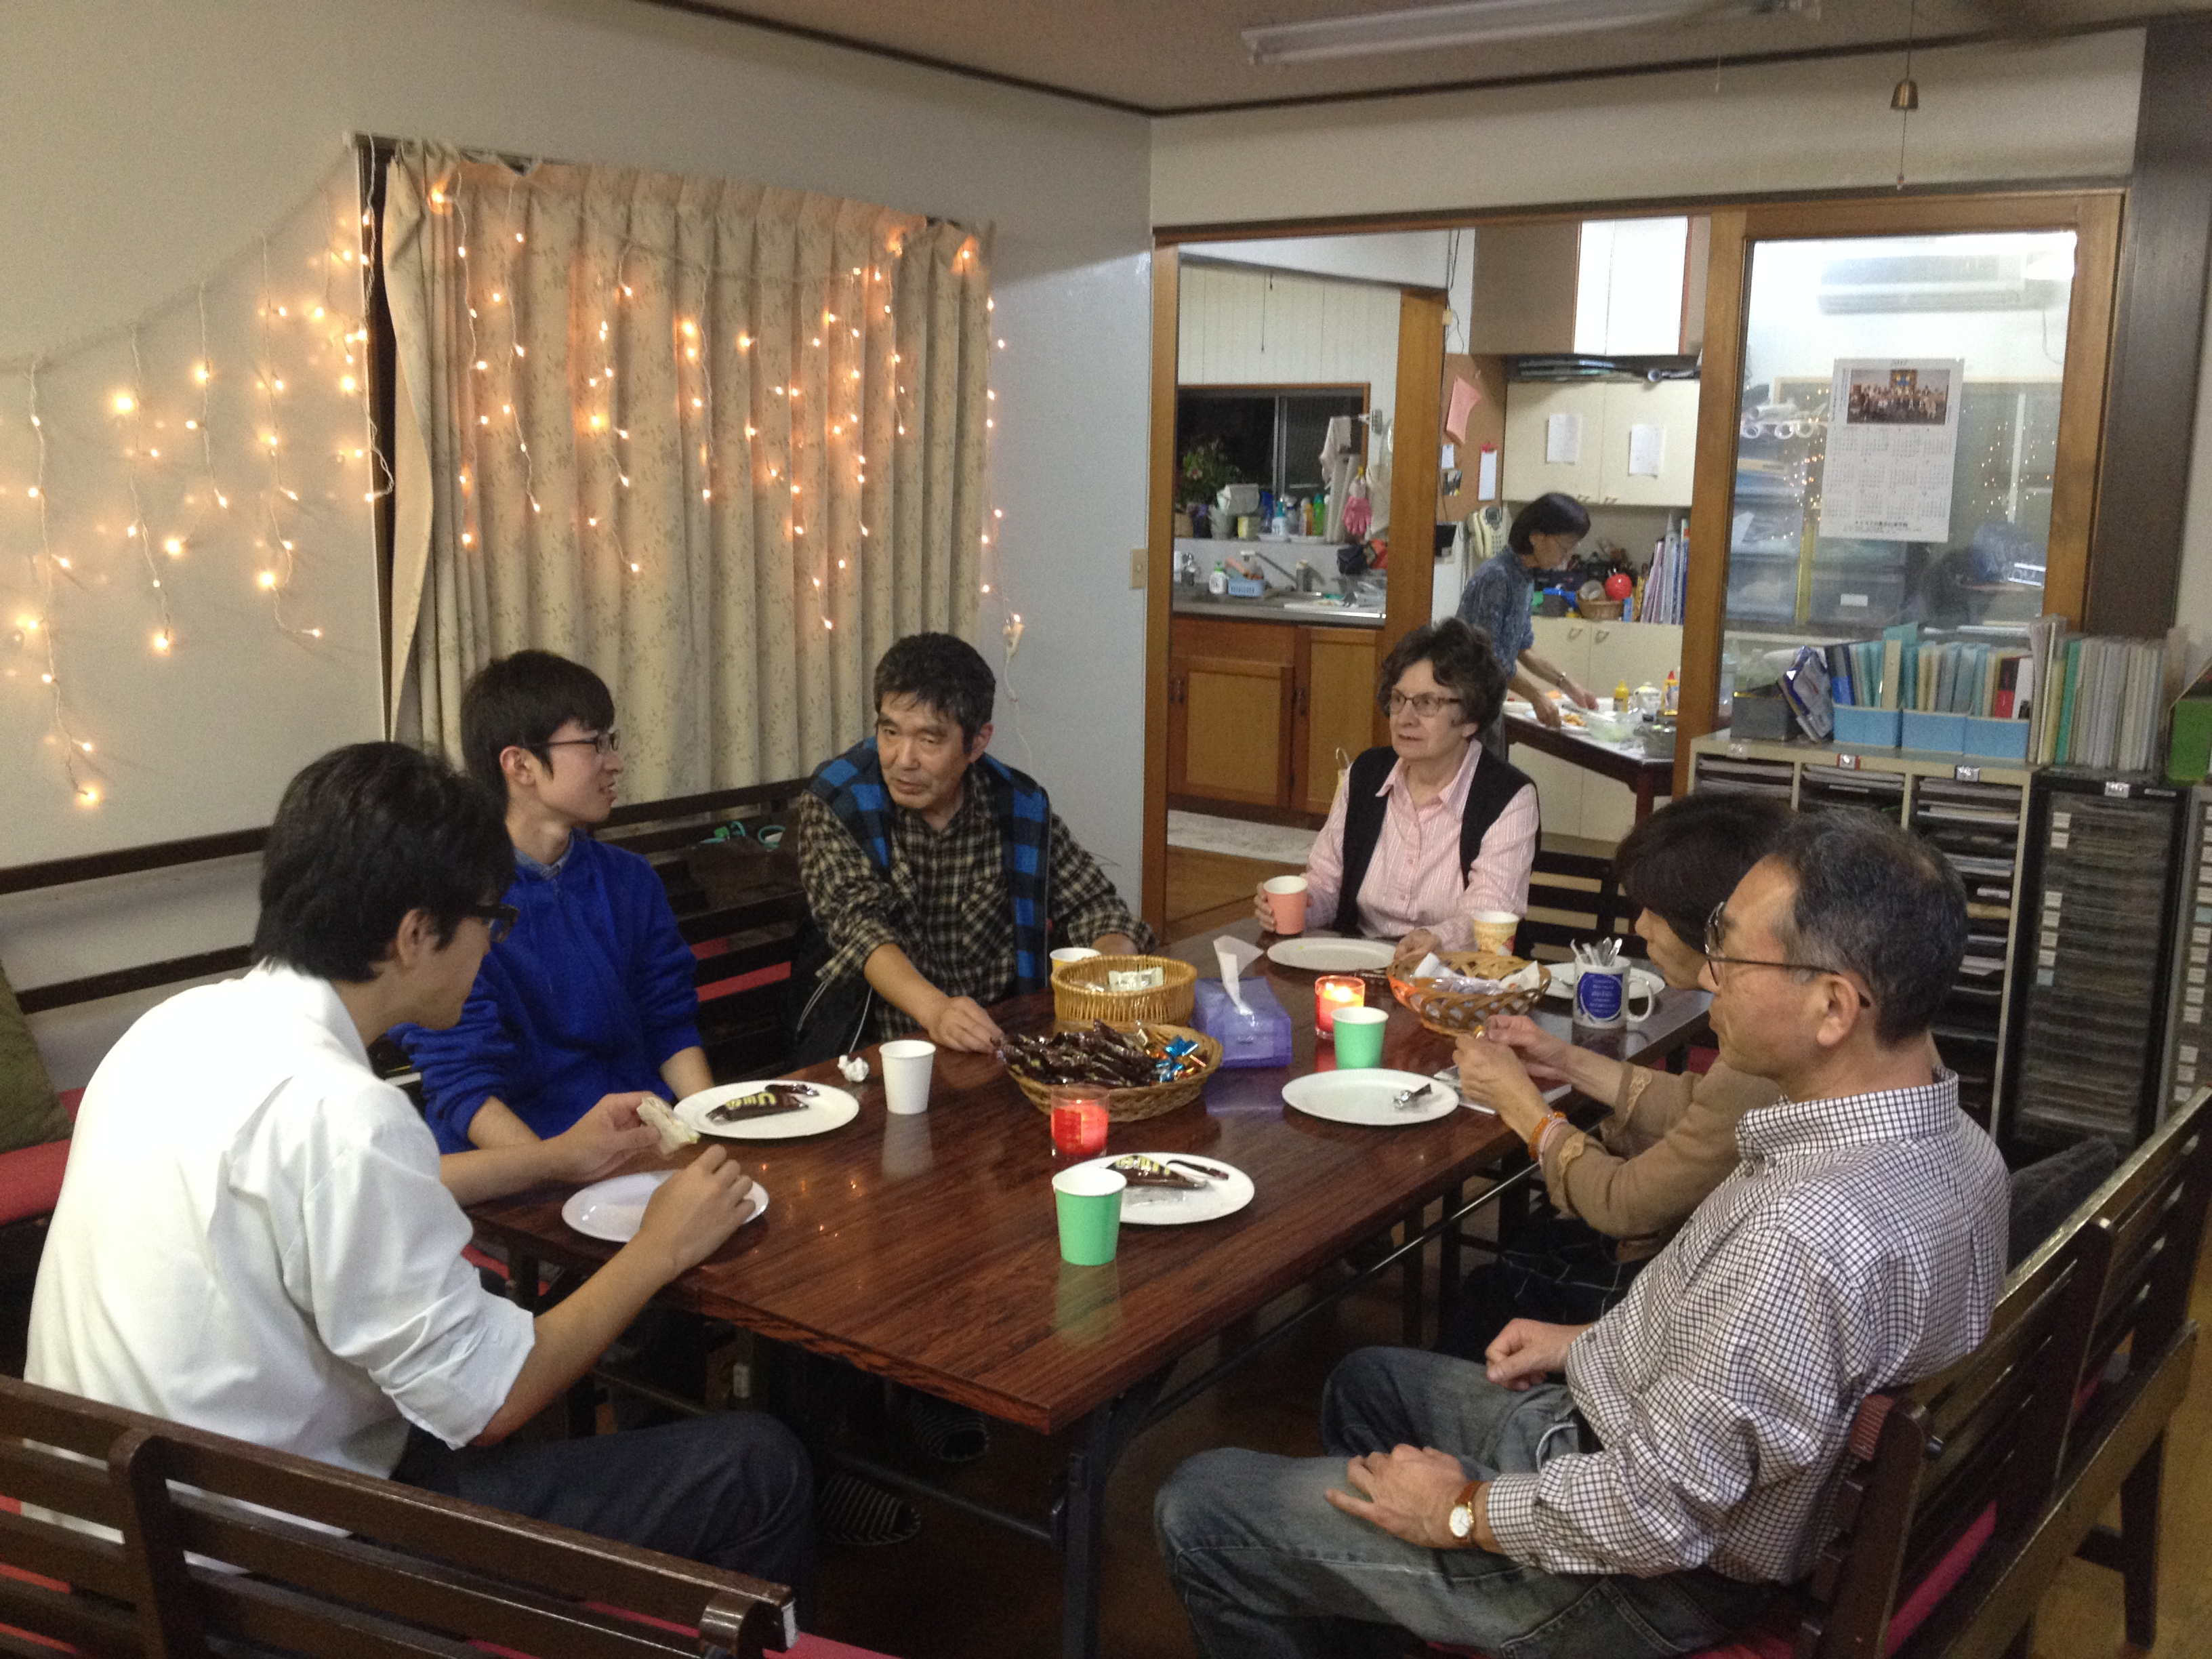 Tomobe congregation's Coffee Hour fellowship.